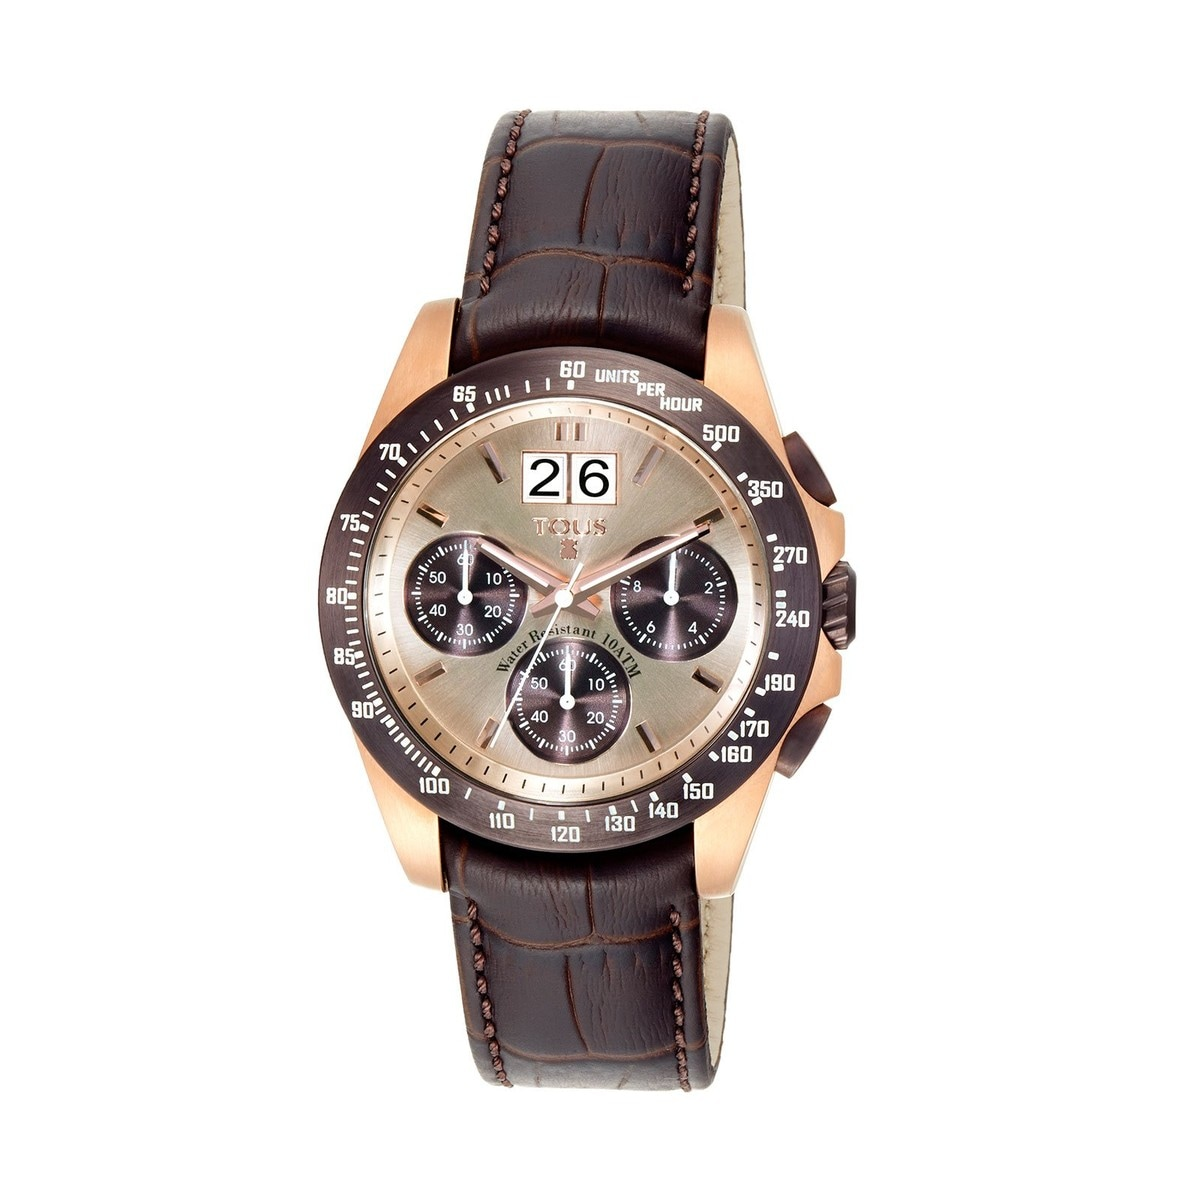 Two-tone pink/chocolate IP Steel Drive Crono Watch with brown Leather strap